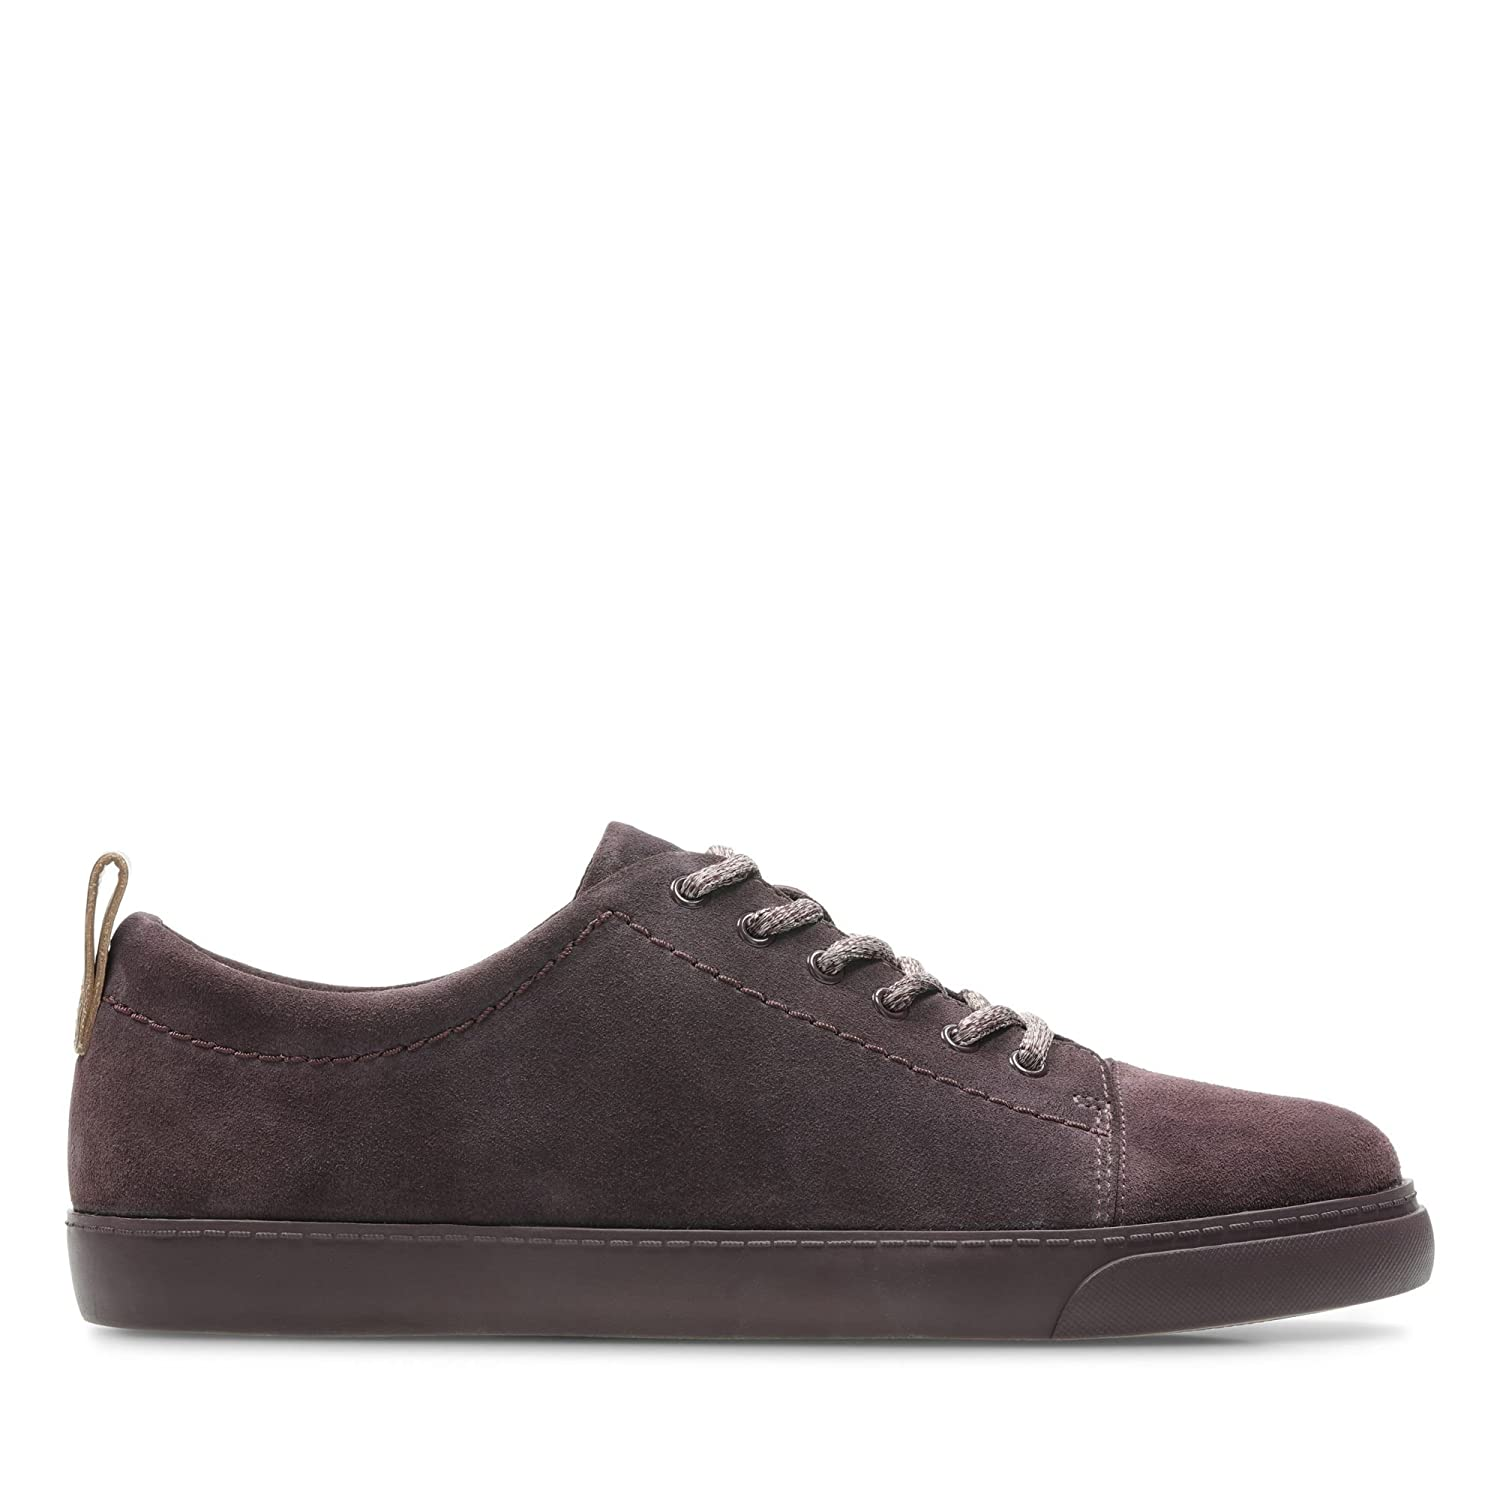 108ee243619 Clarks Glove Echo Suede Shoes in Purple  Amazon.co.uk  Shoes   Bags